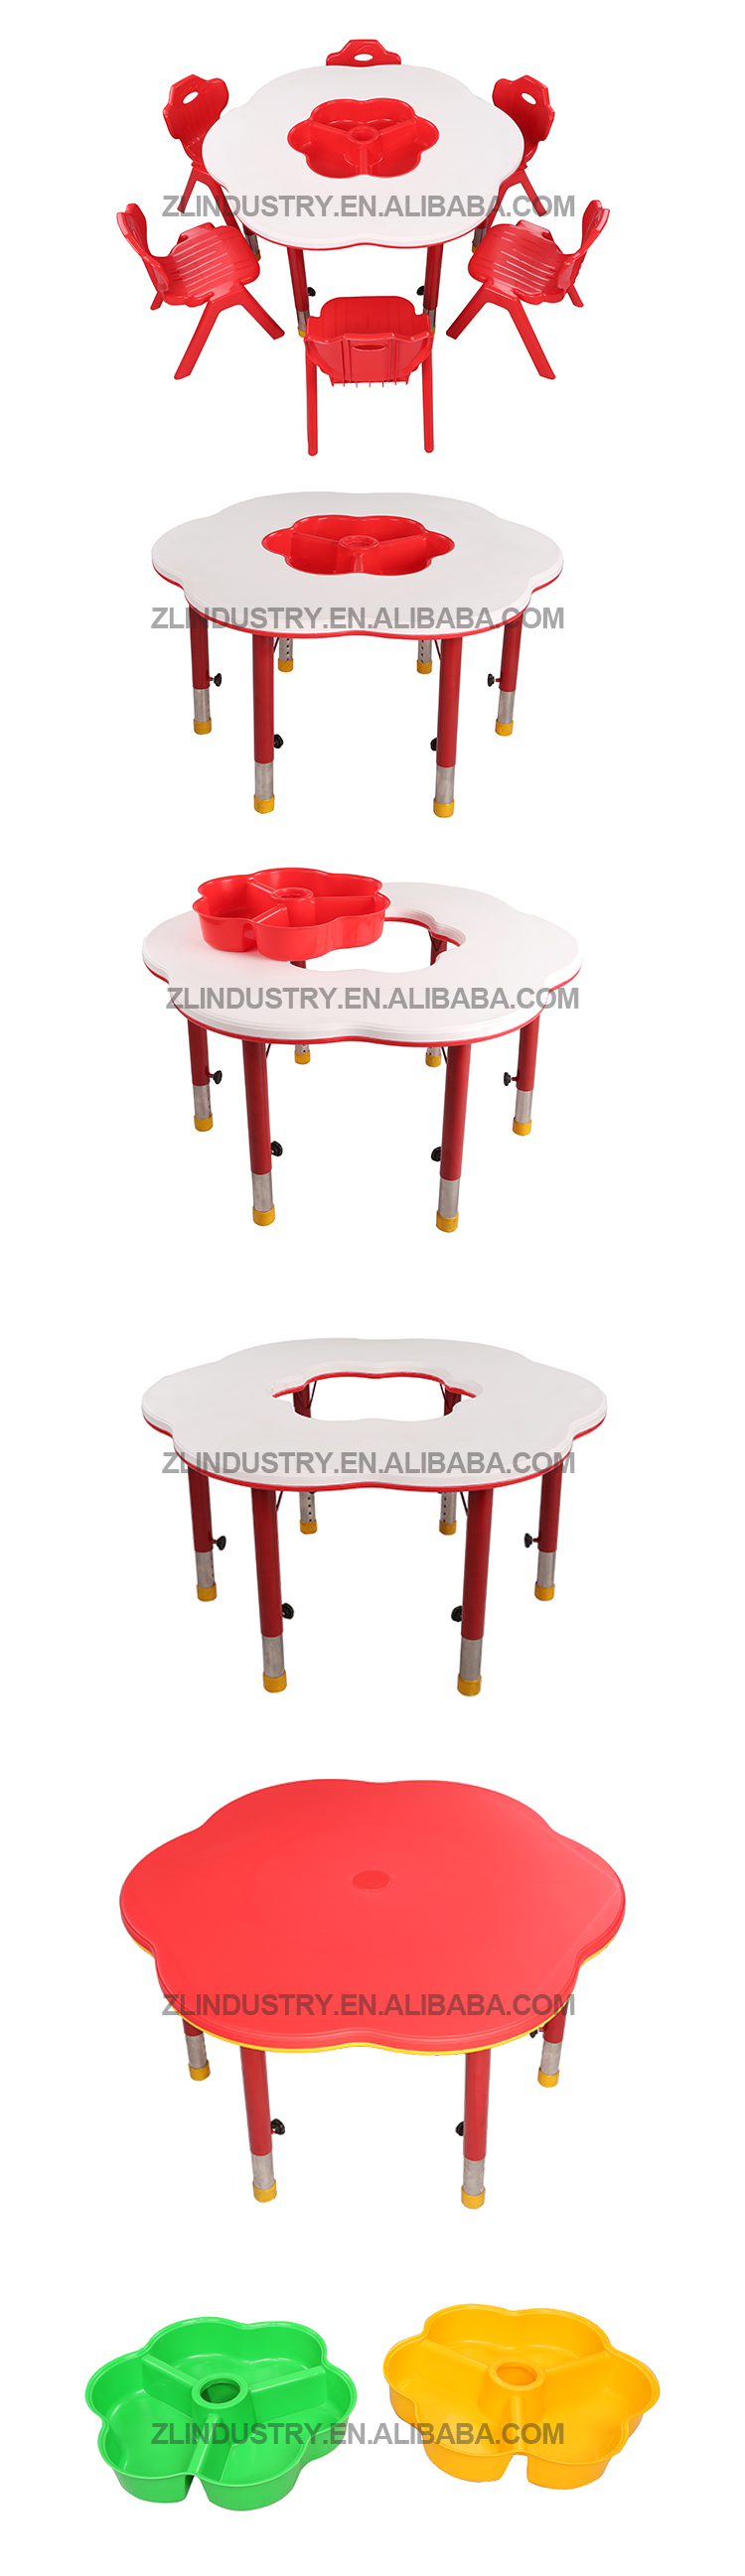 Quality-Assured cheap durable kids table and chair set